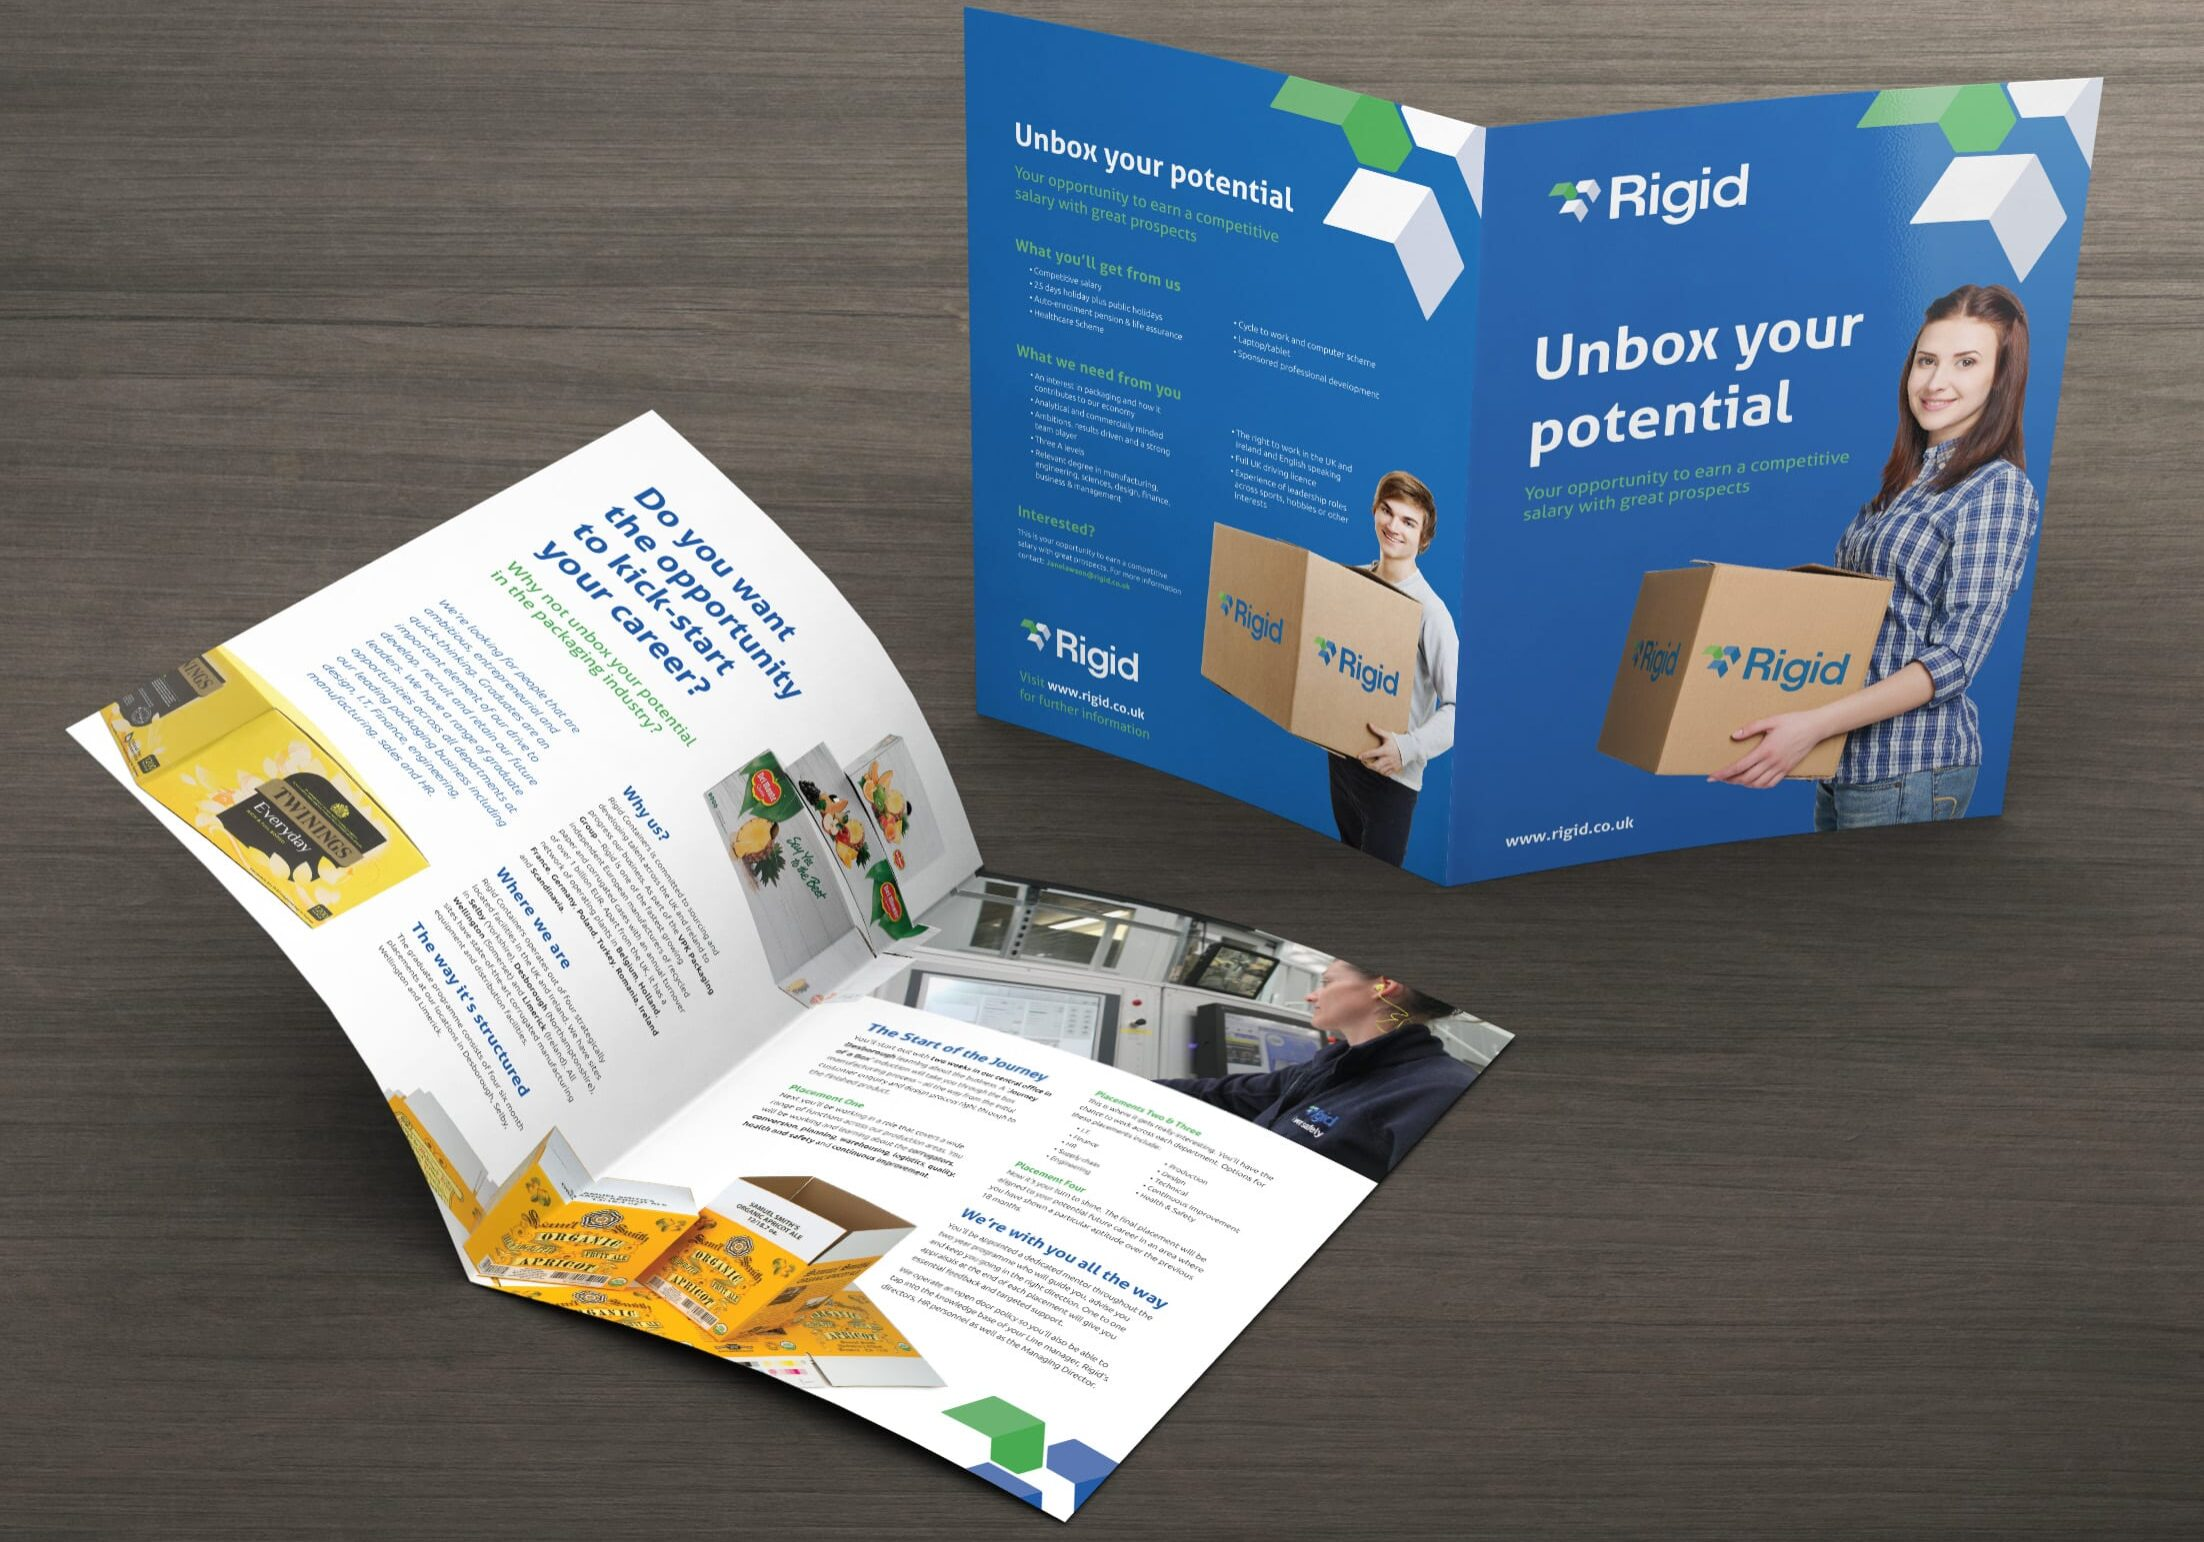 Design for a graduate recruitment brochure for Rigid Containers (now VPK)